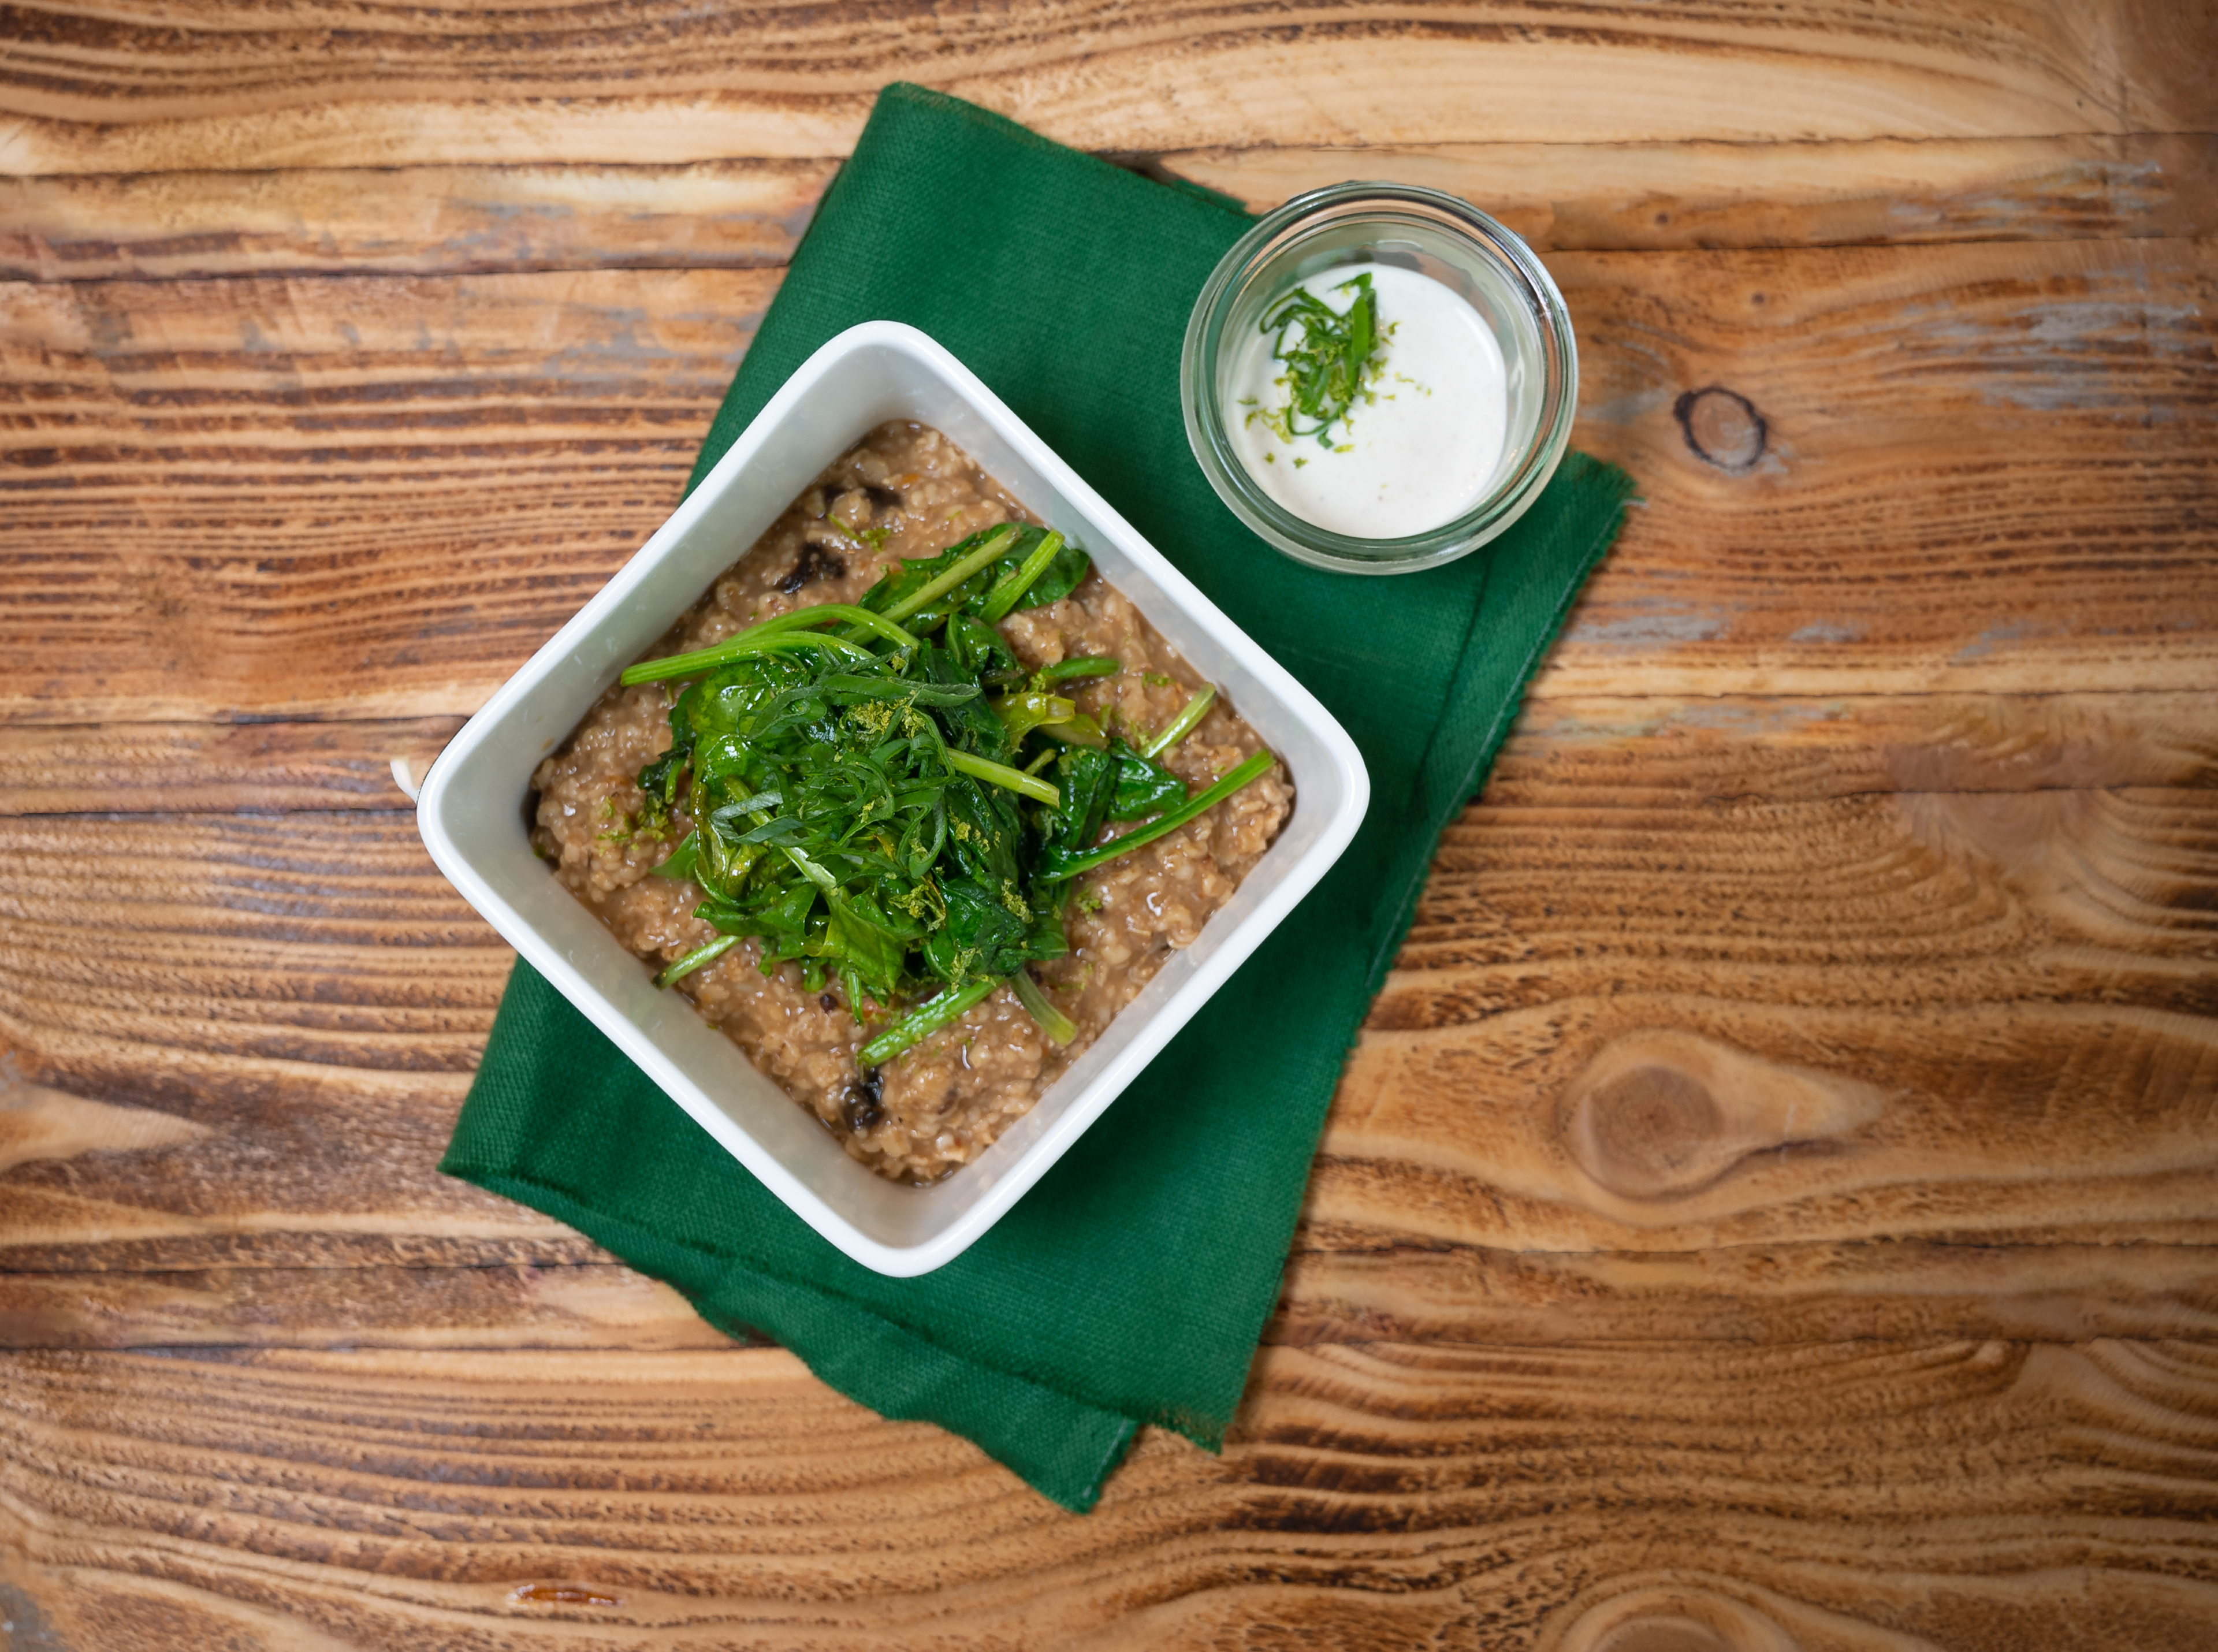 Hearty spinach porridge